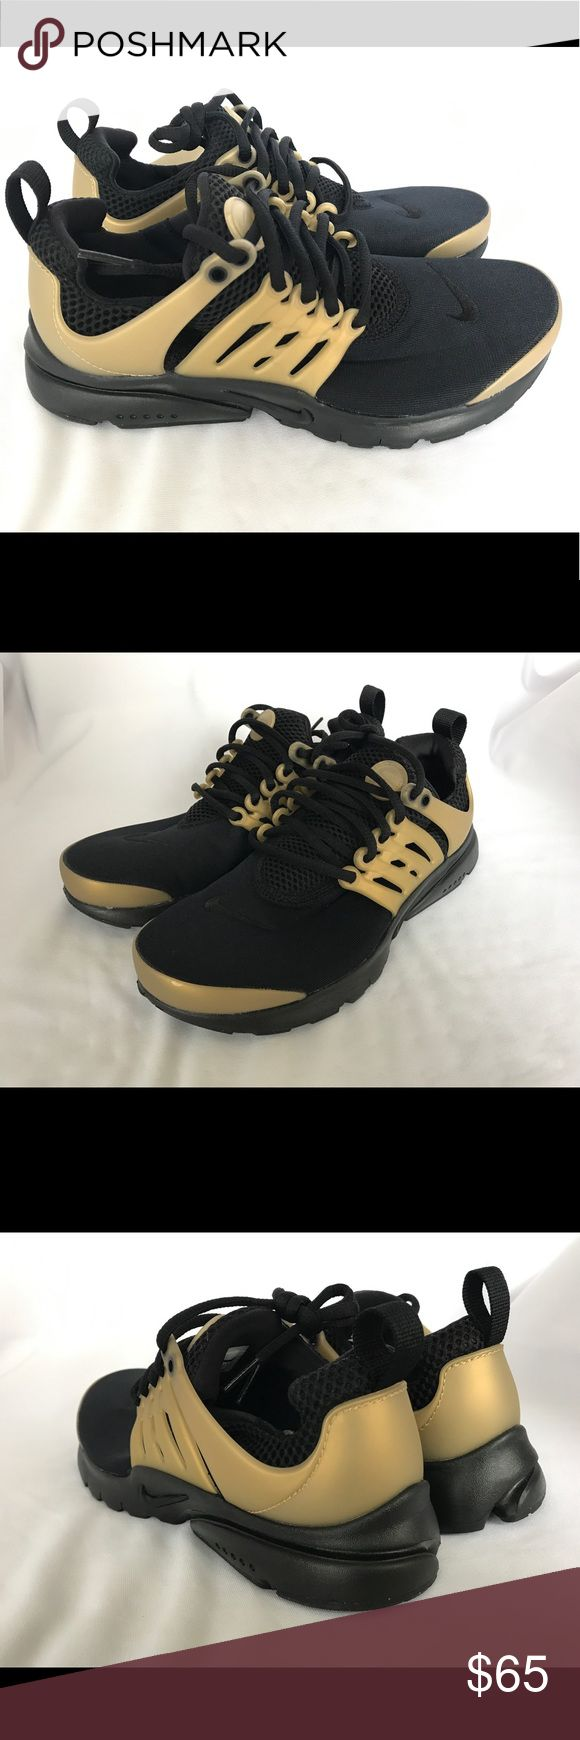 New NIKE Presto black/gold Sz 5 youth New, unused Nike Presto size 5Y. These are light weight and comfortable! They're perfect for every day use or running. These will also fit size 6-6.5 women's. Nike Shoes Sneakers